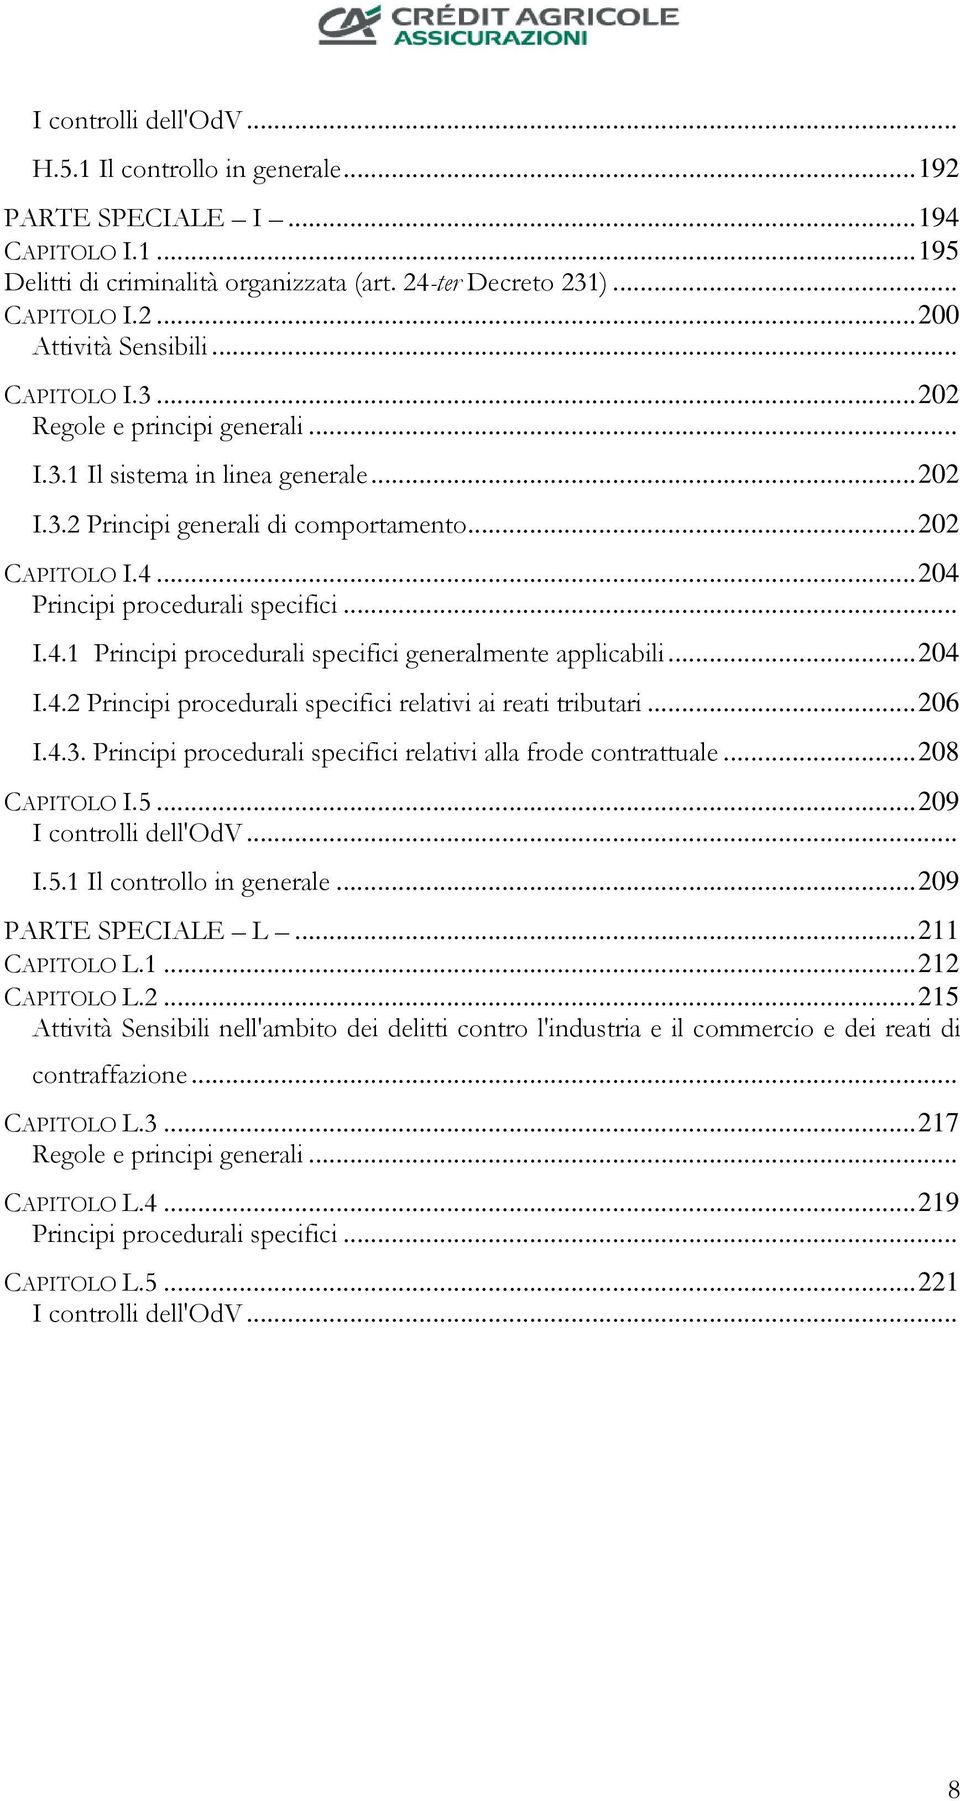 .. 204 Principi procedurali specifici... I.4.1 Principi procedurali specifici generalmente applicabili... 204 I.4.2 Principi procedurali specifici relativi ai reati tributari... 206 I.4.3.